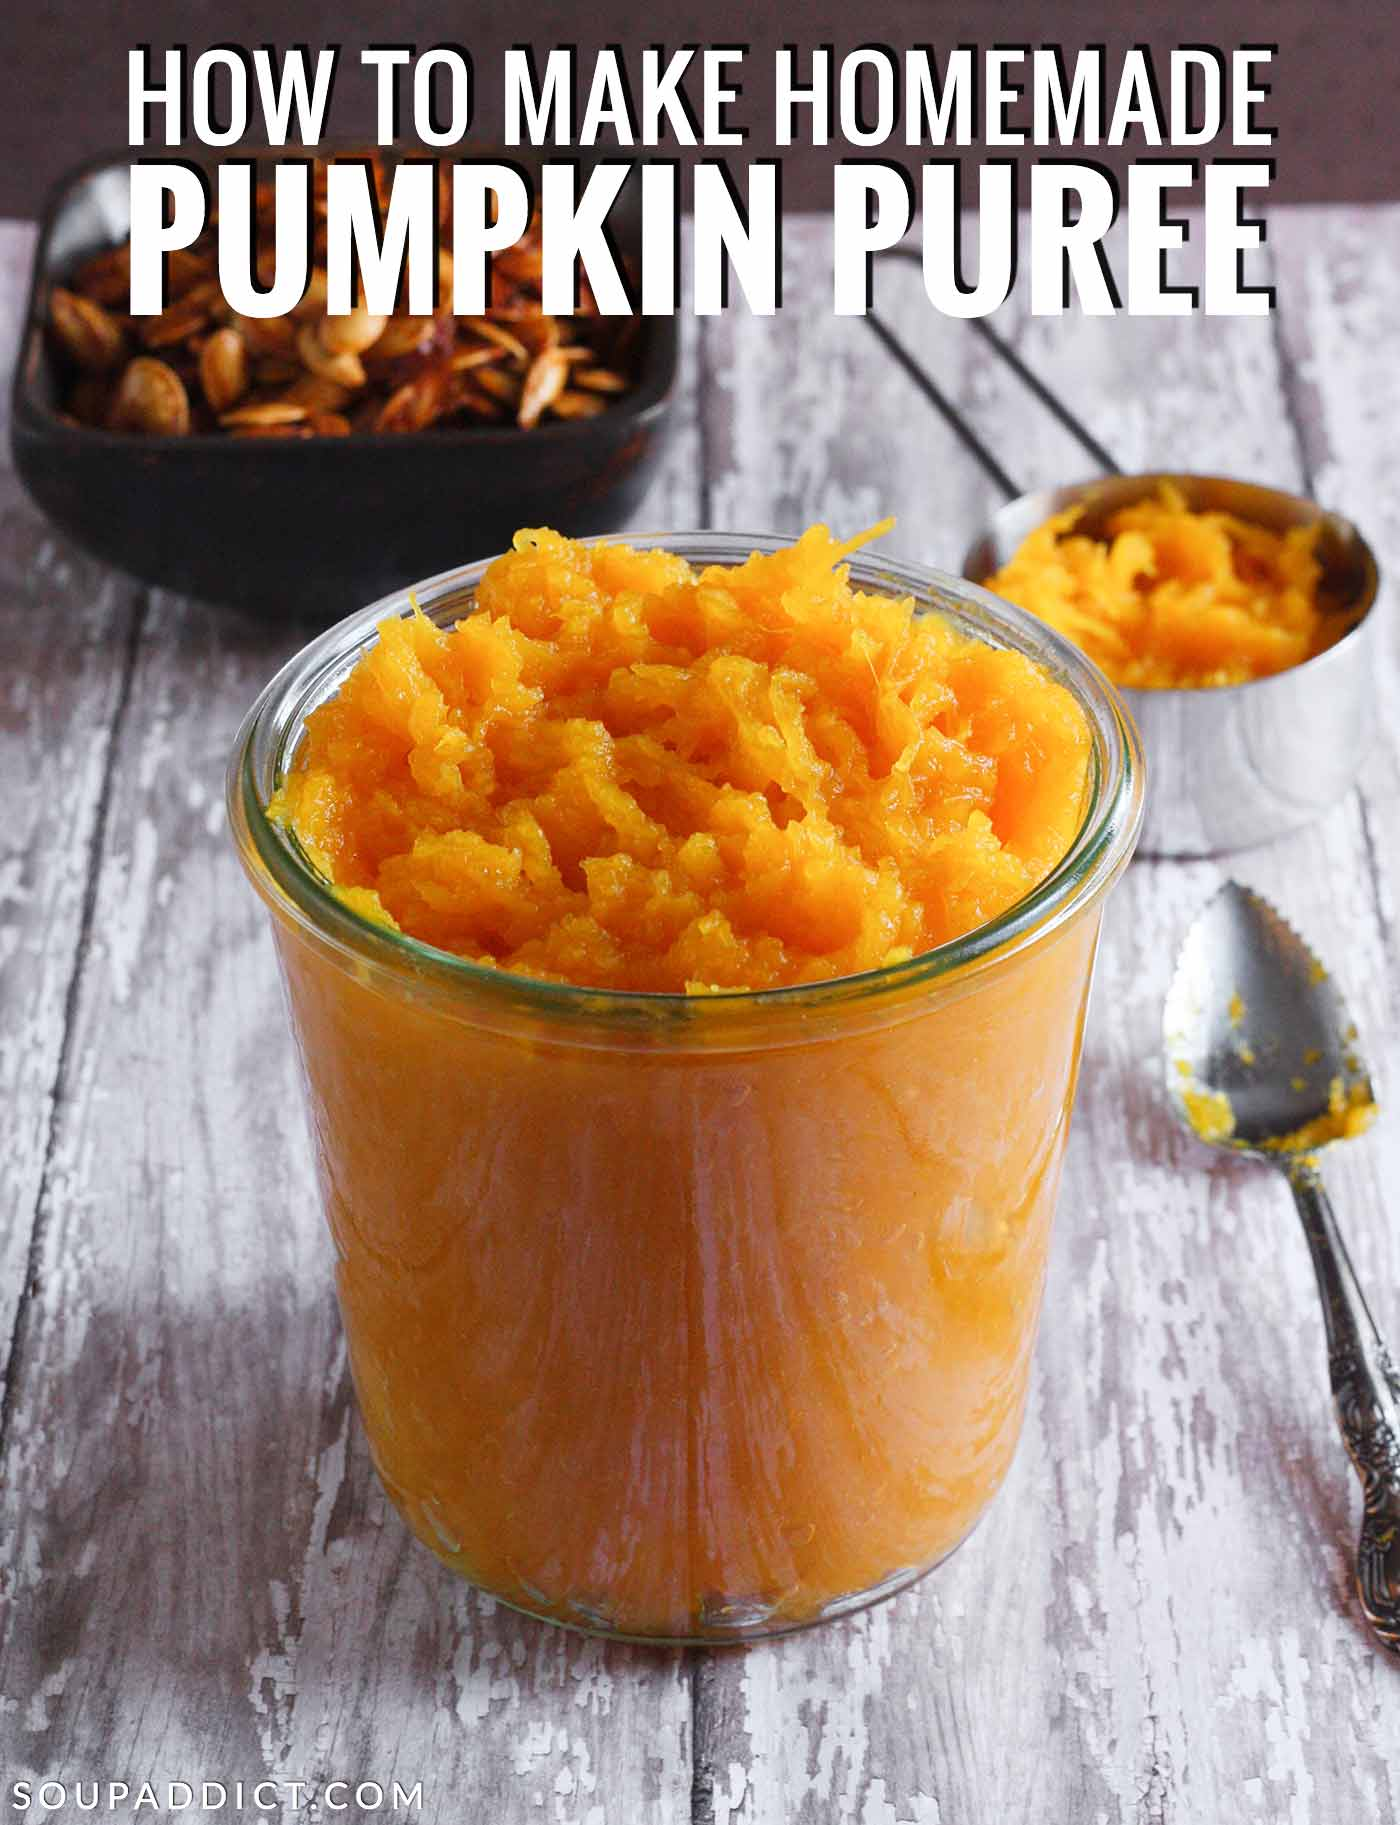 How to make pumpkin puree - Recipe at SoupAddict.com | #pumpkinpuree #homemade